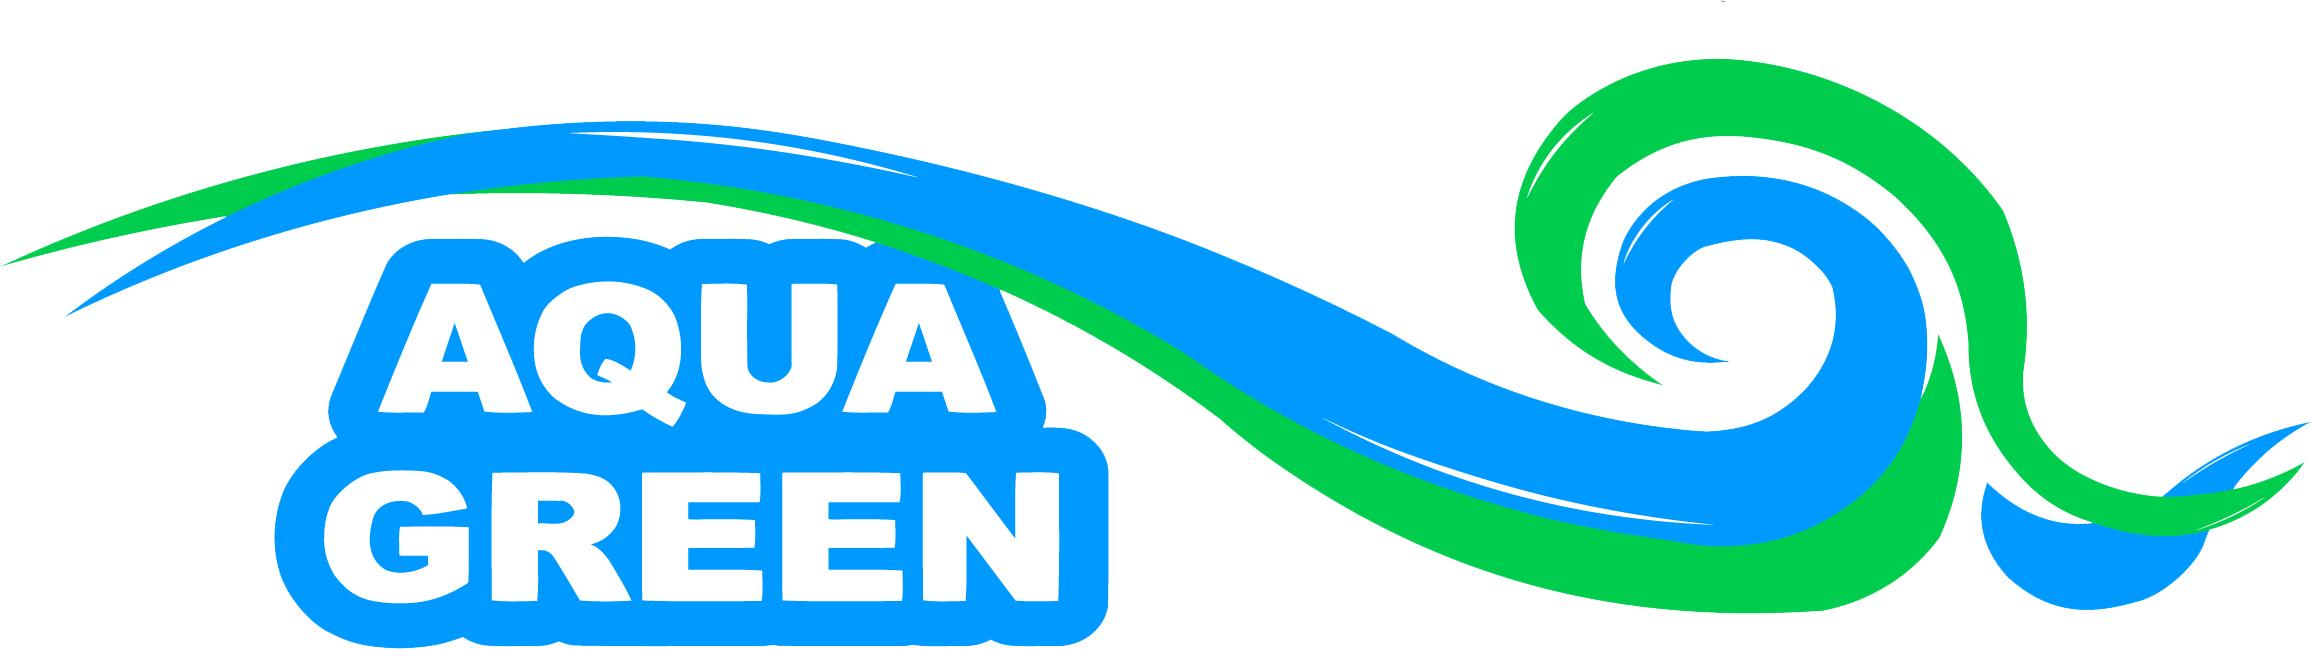 aquagreen logo_1_15_1